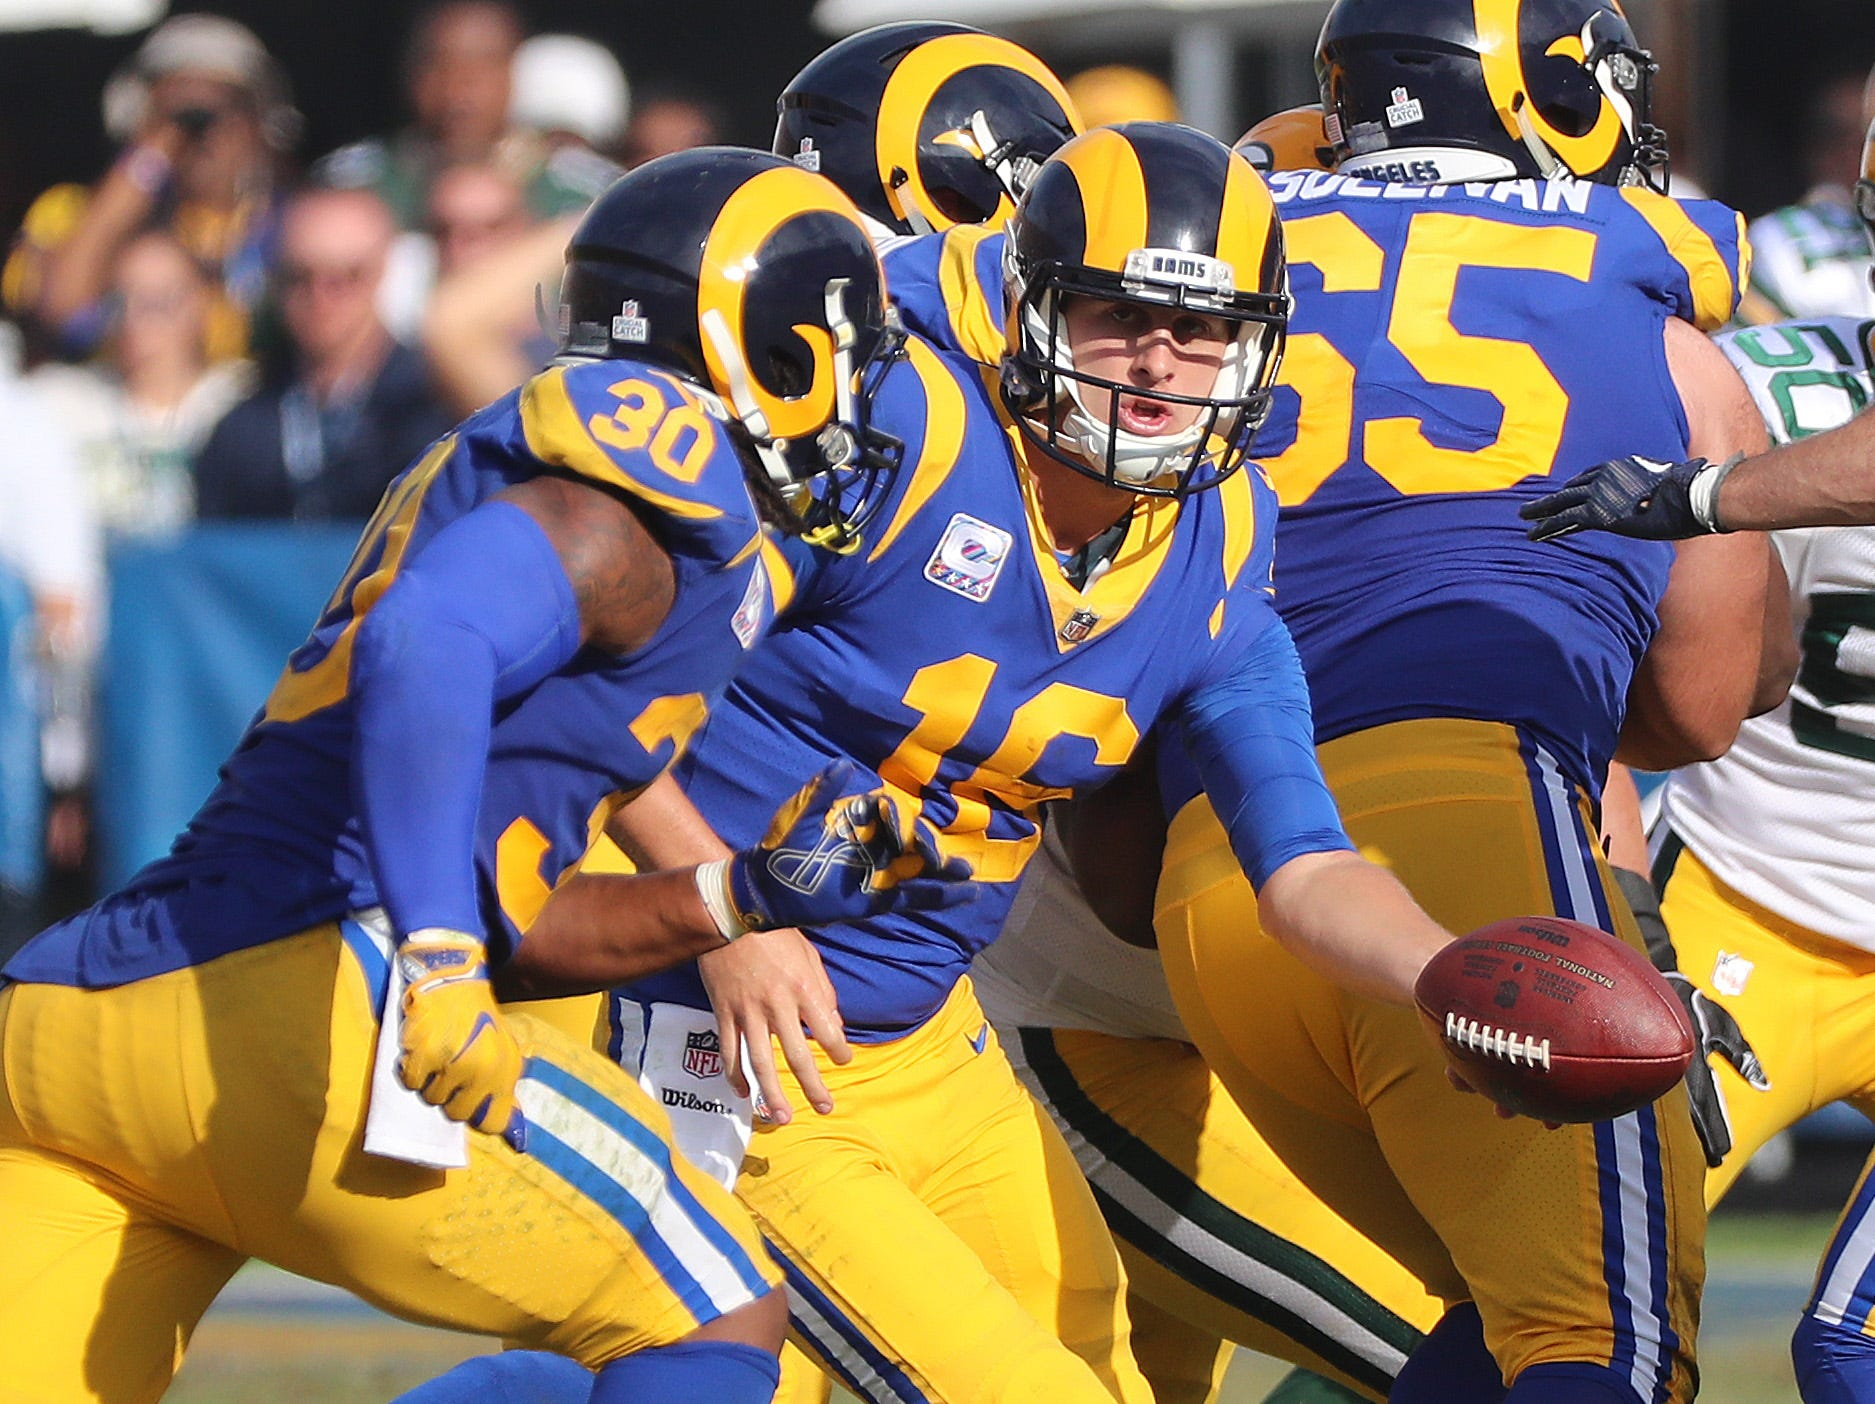 Los Angeles Rams quarterback Jared Goff (16) hands off to running back Todd Gurley (30) against the Green Bay Packers Sunday, October 28, 2018 at the Memorial Coliseum in Los Angeles.